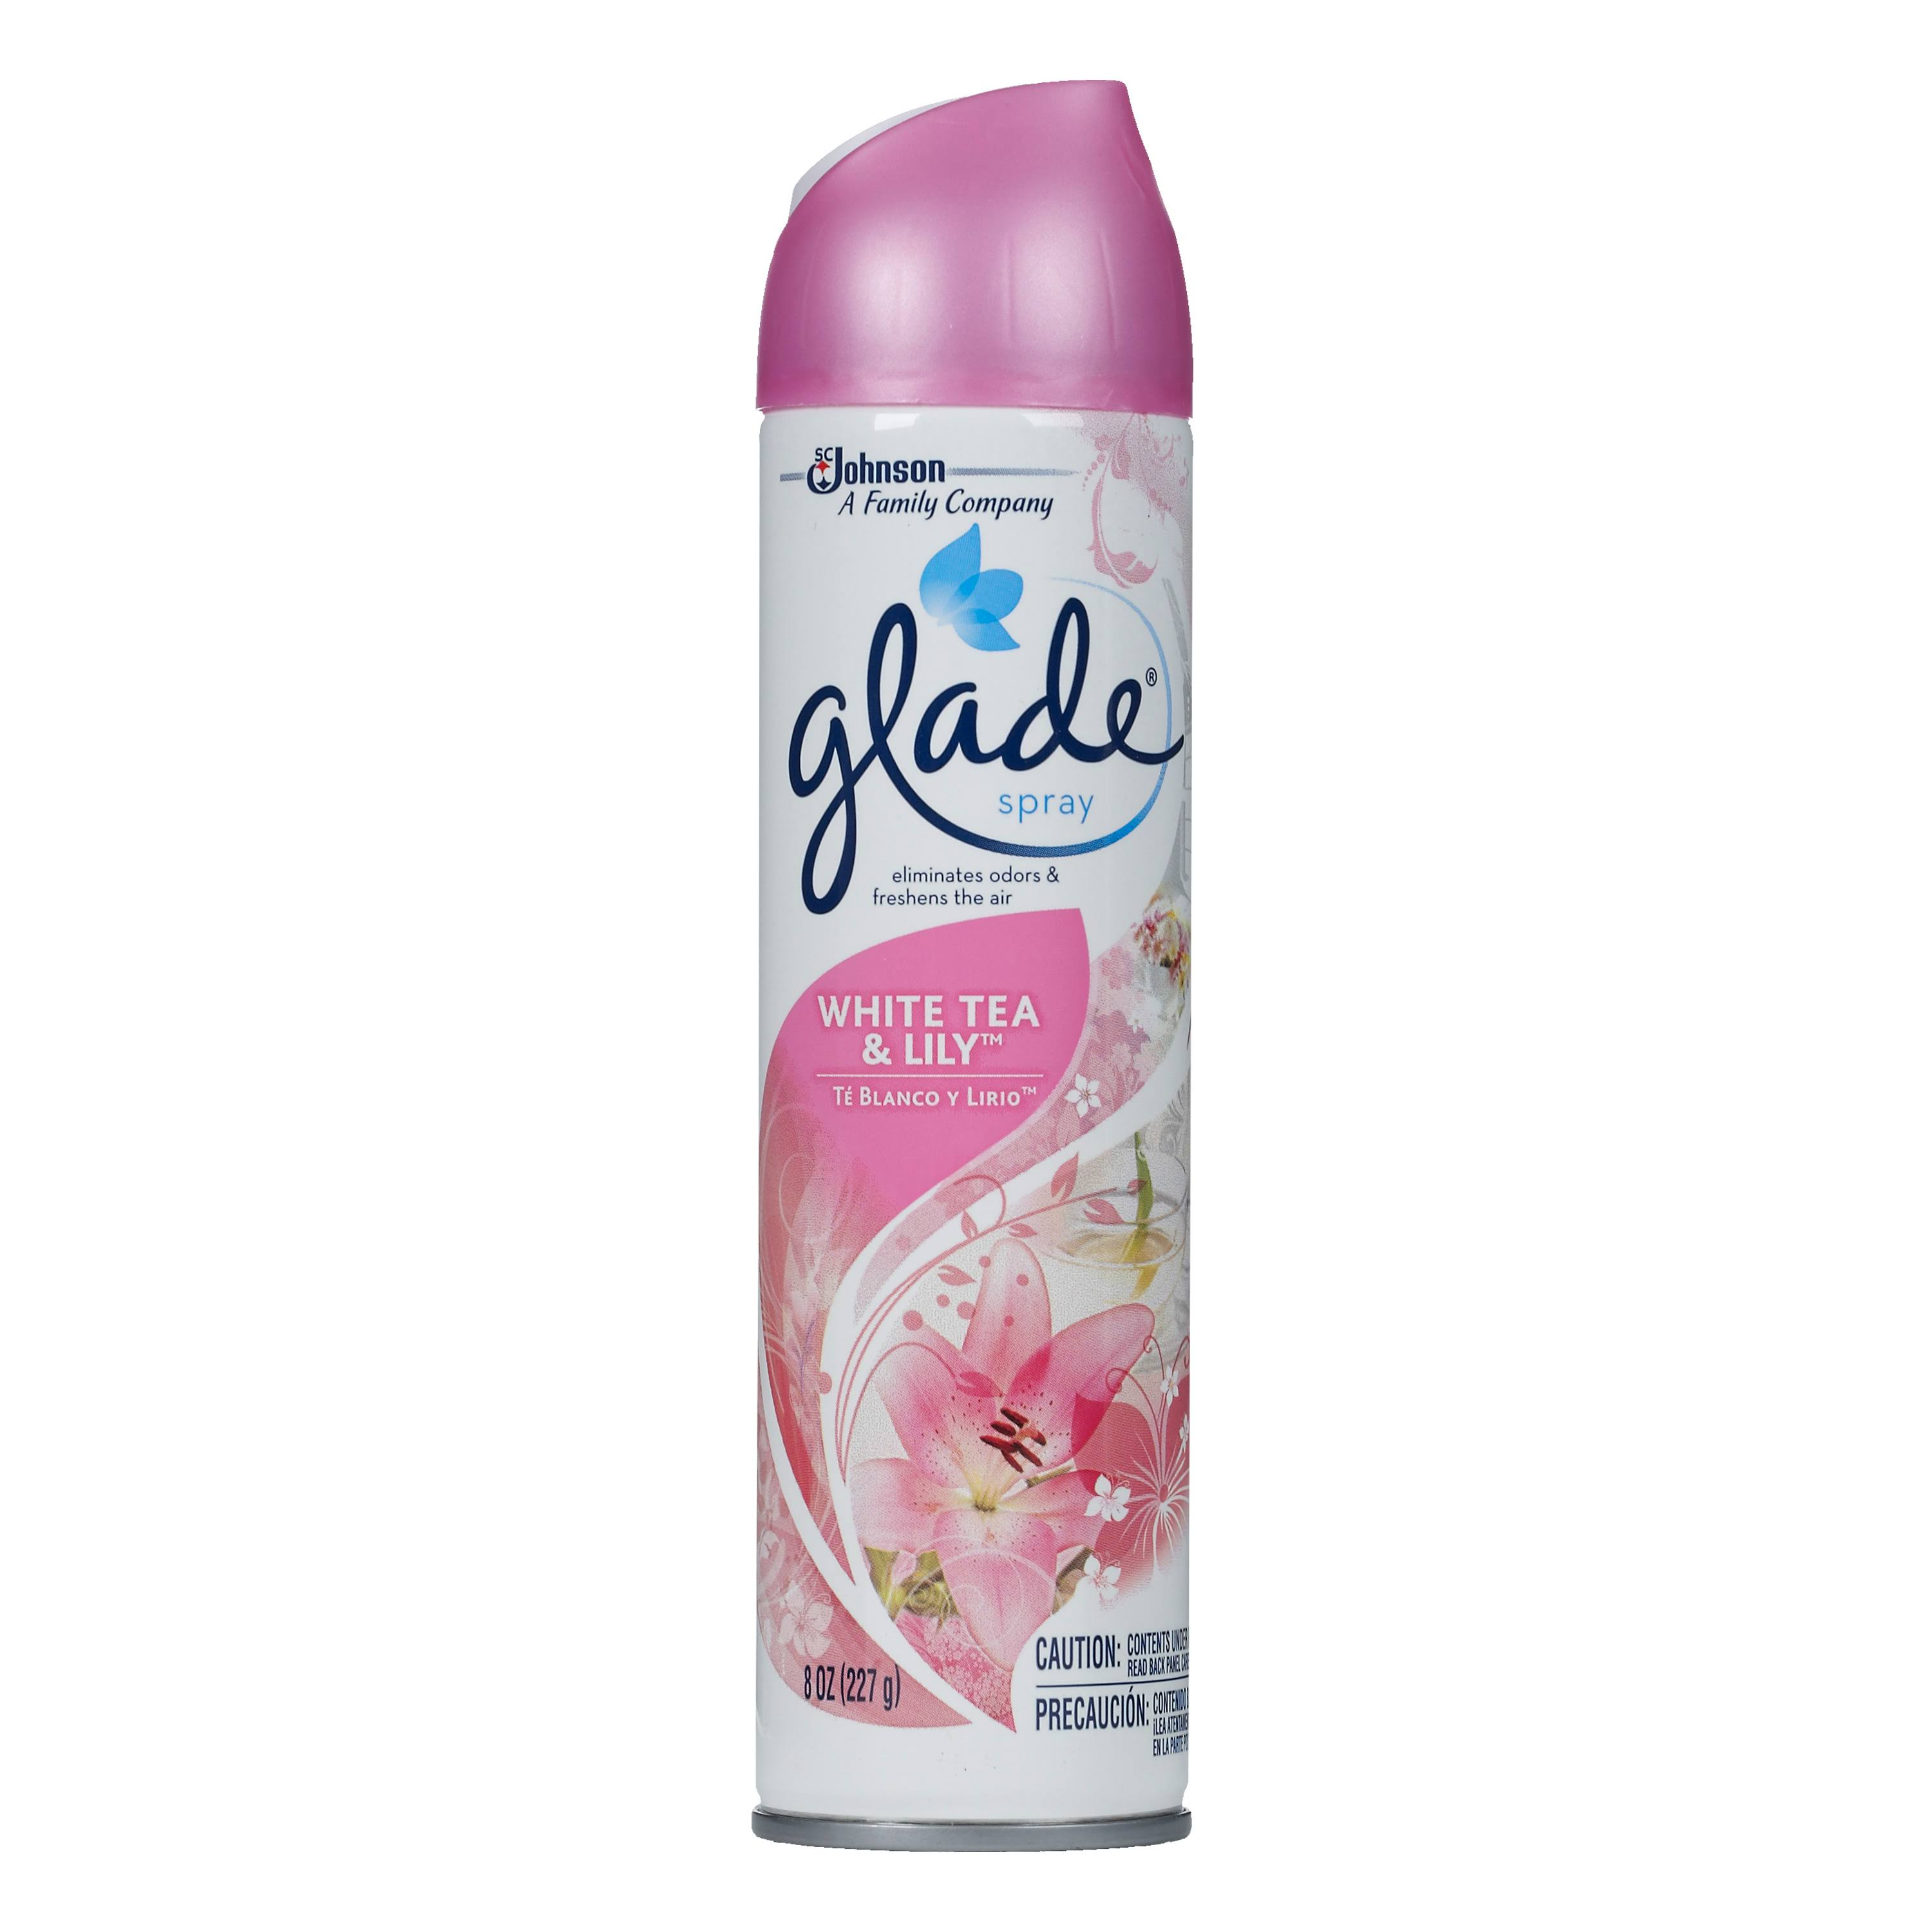 Glade Room Spray Air Freshener - White Tea and Lily, 8oz